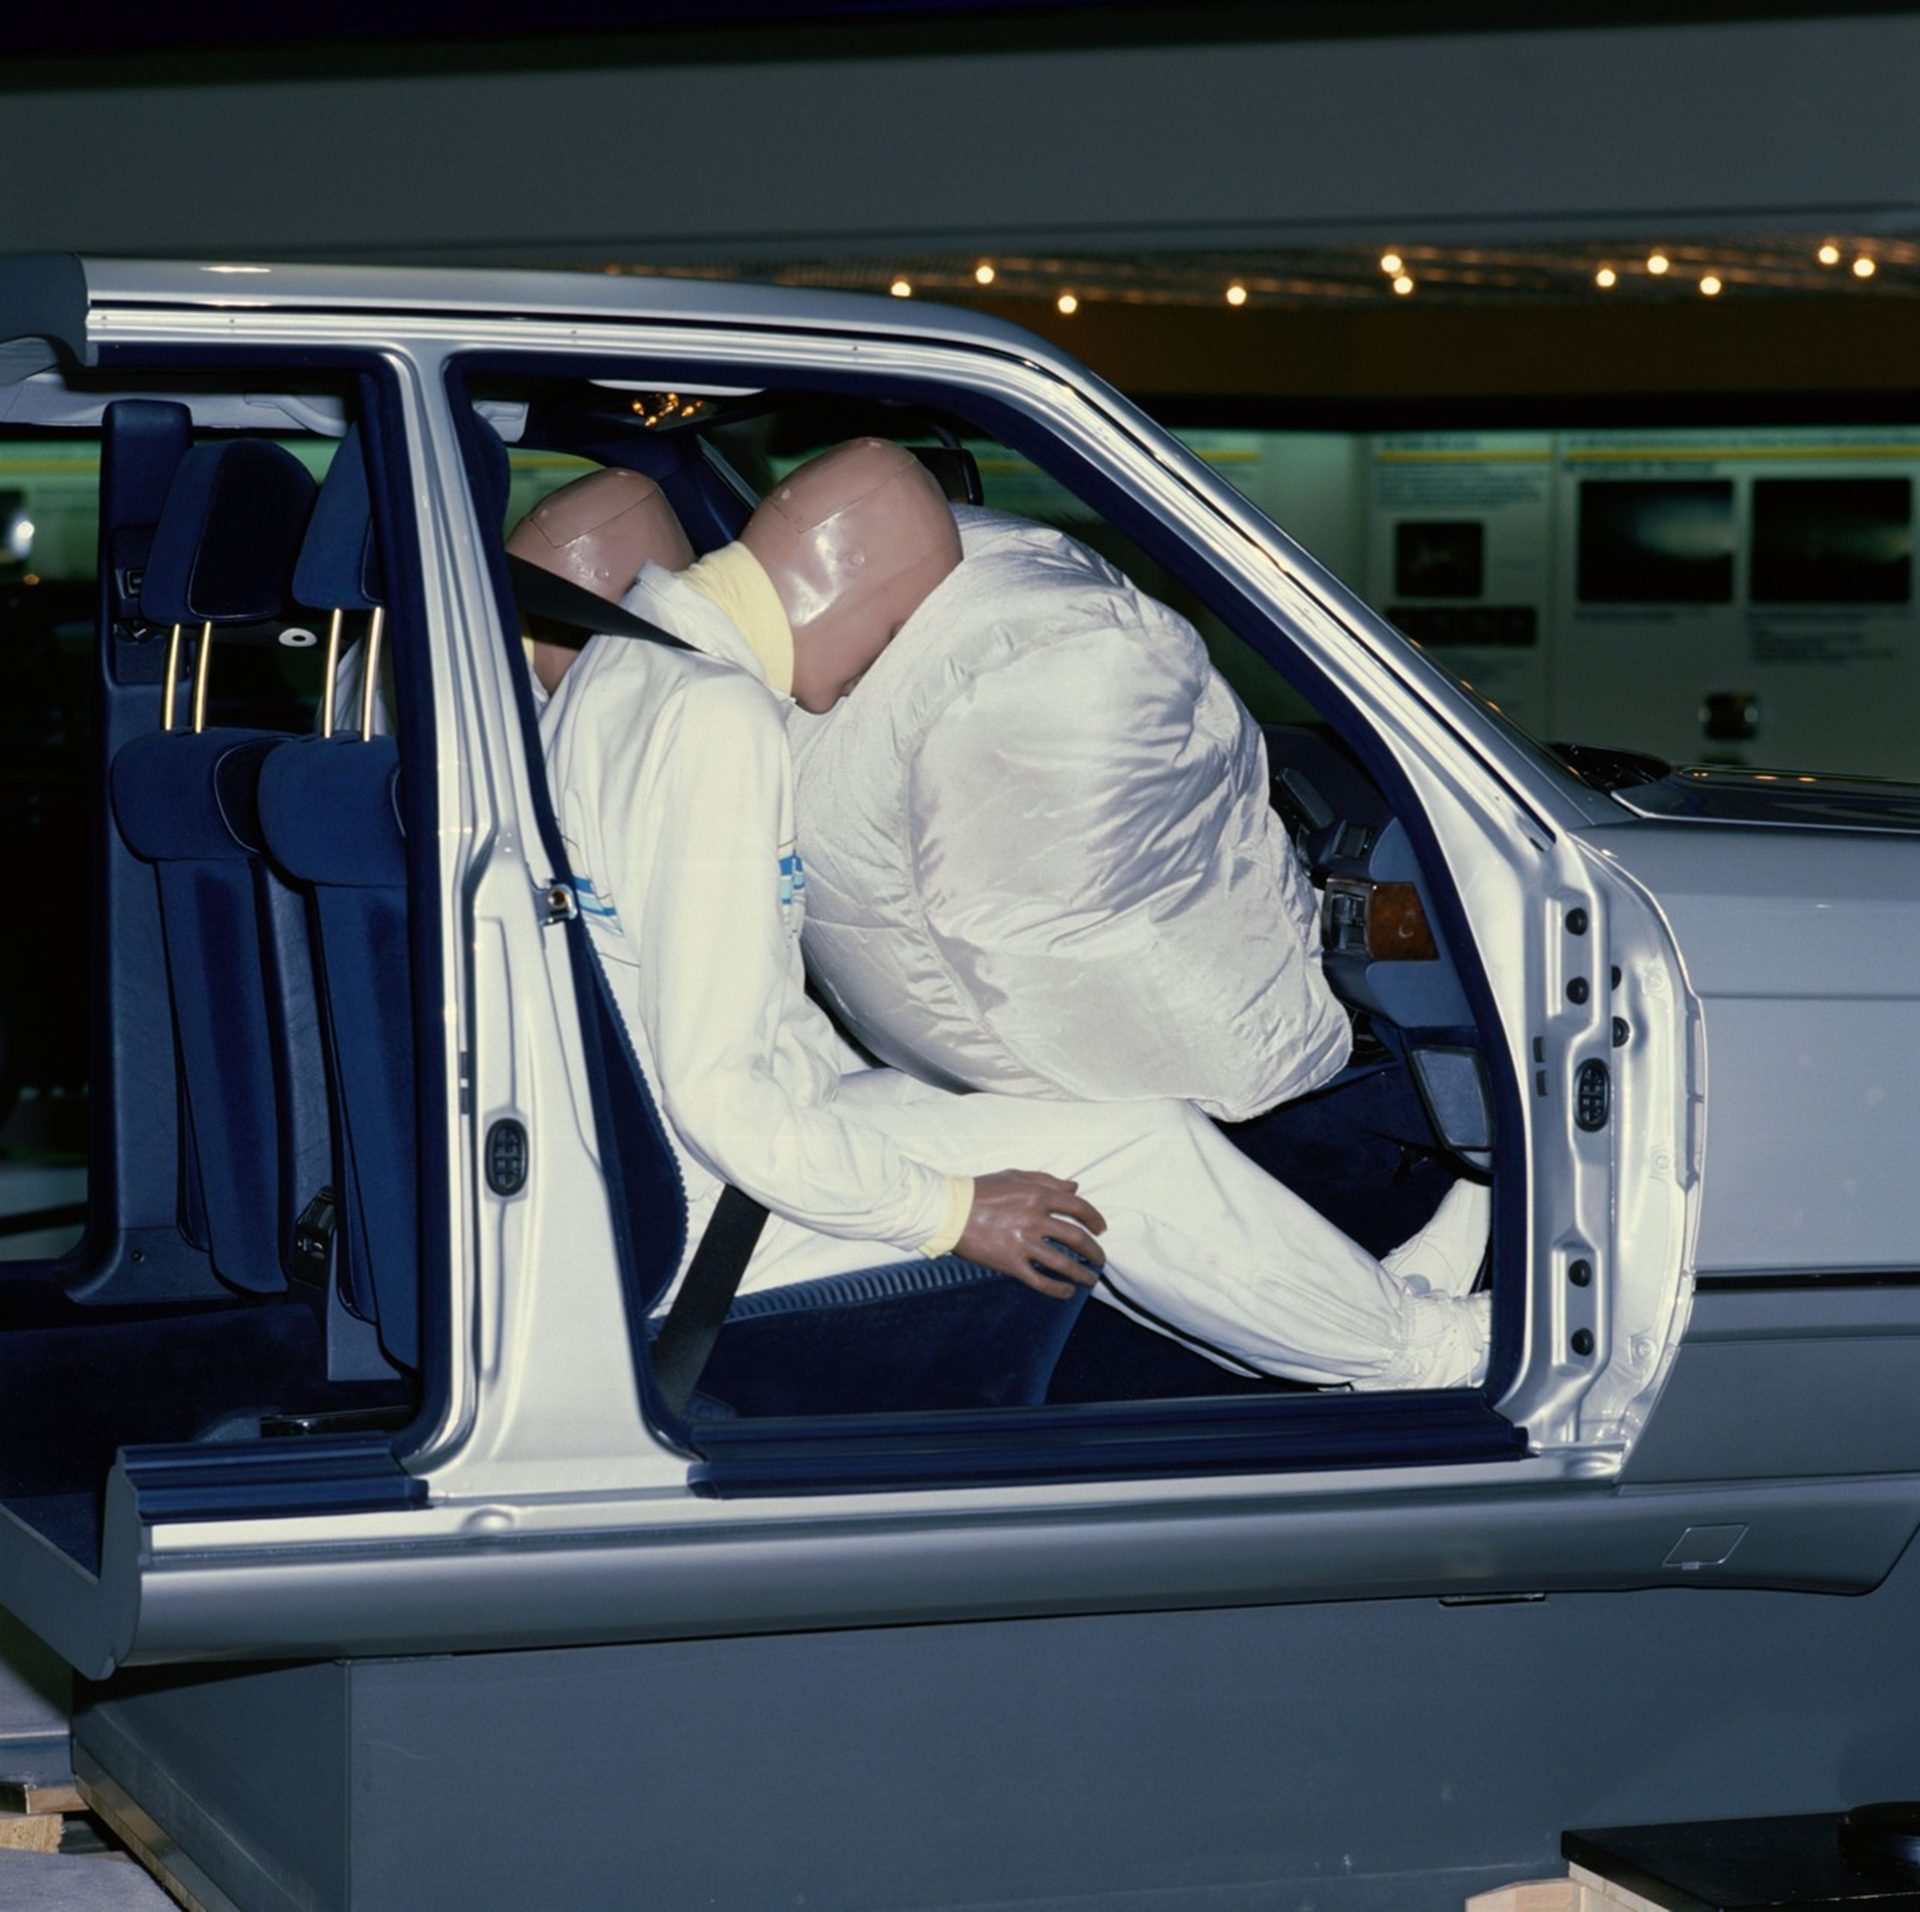 Mercedes-Benz airbags